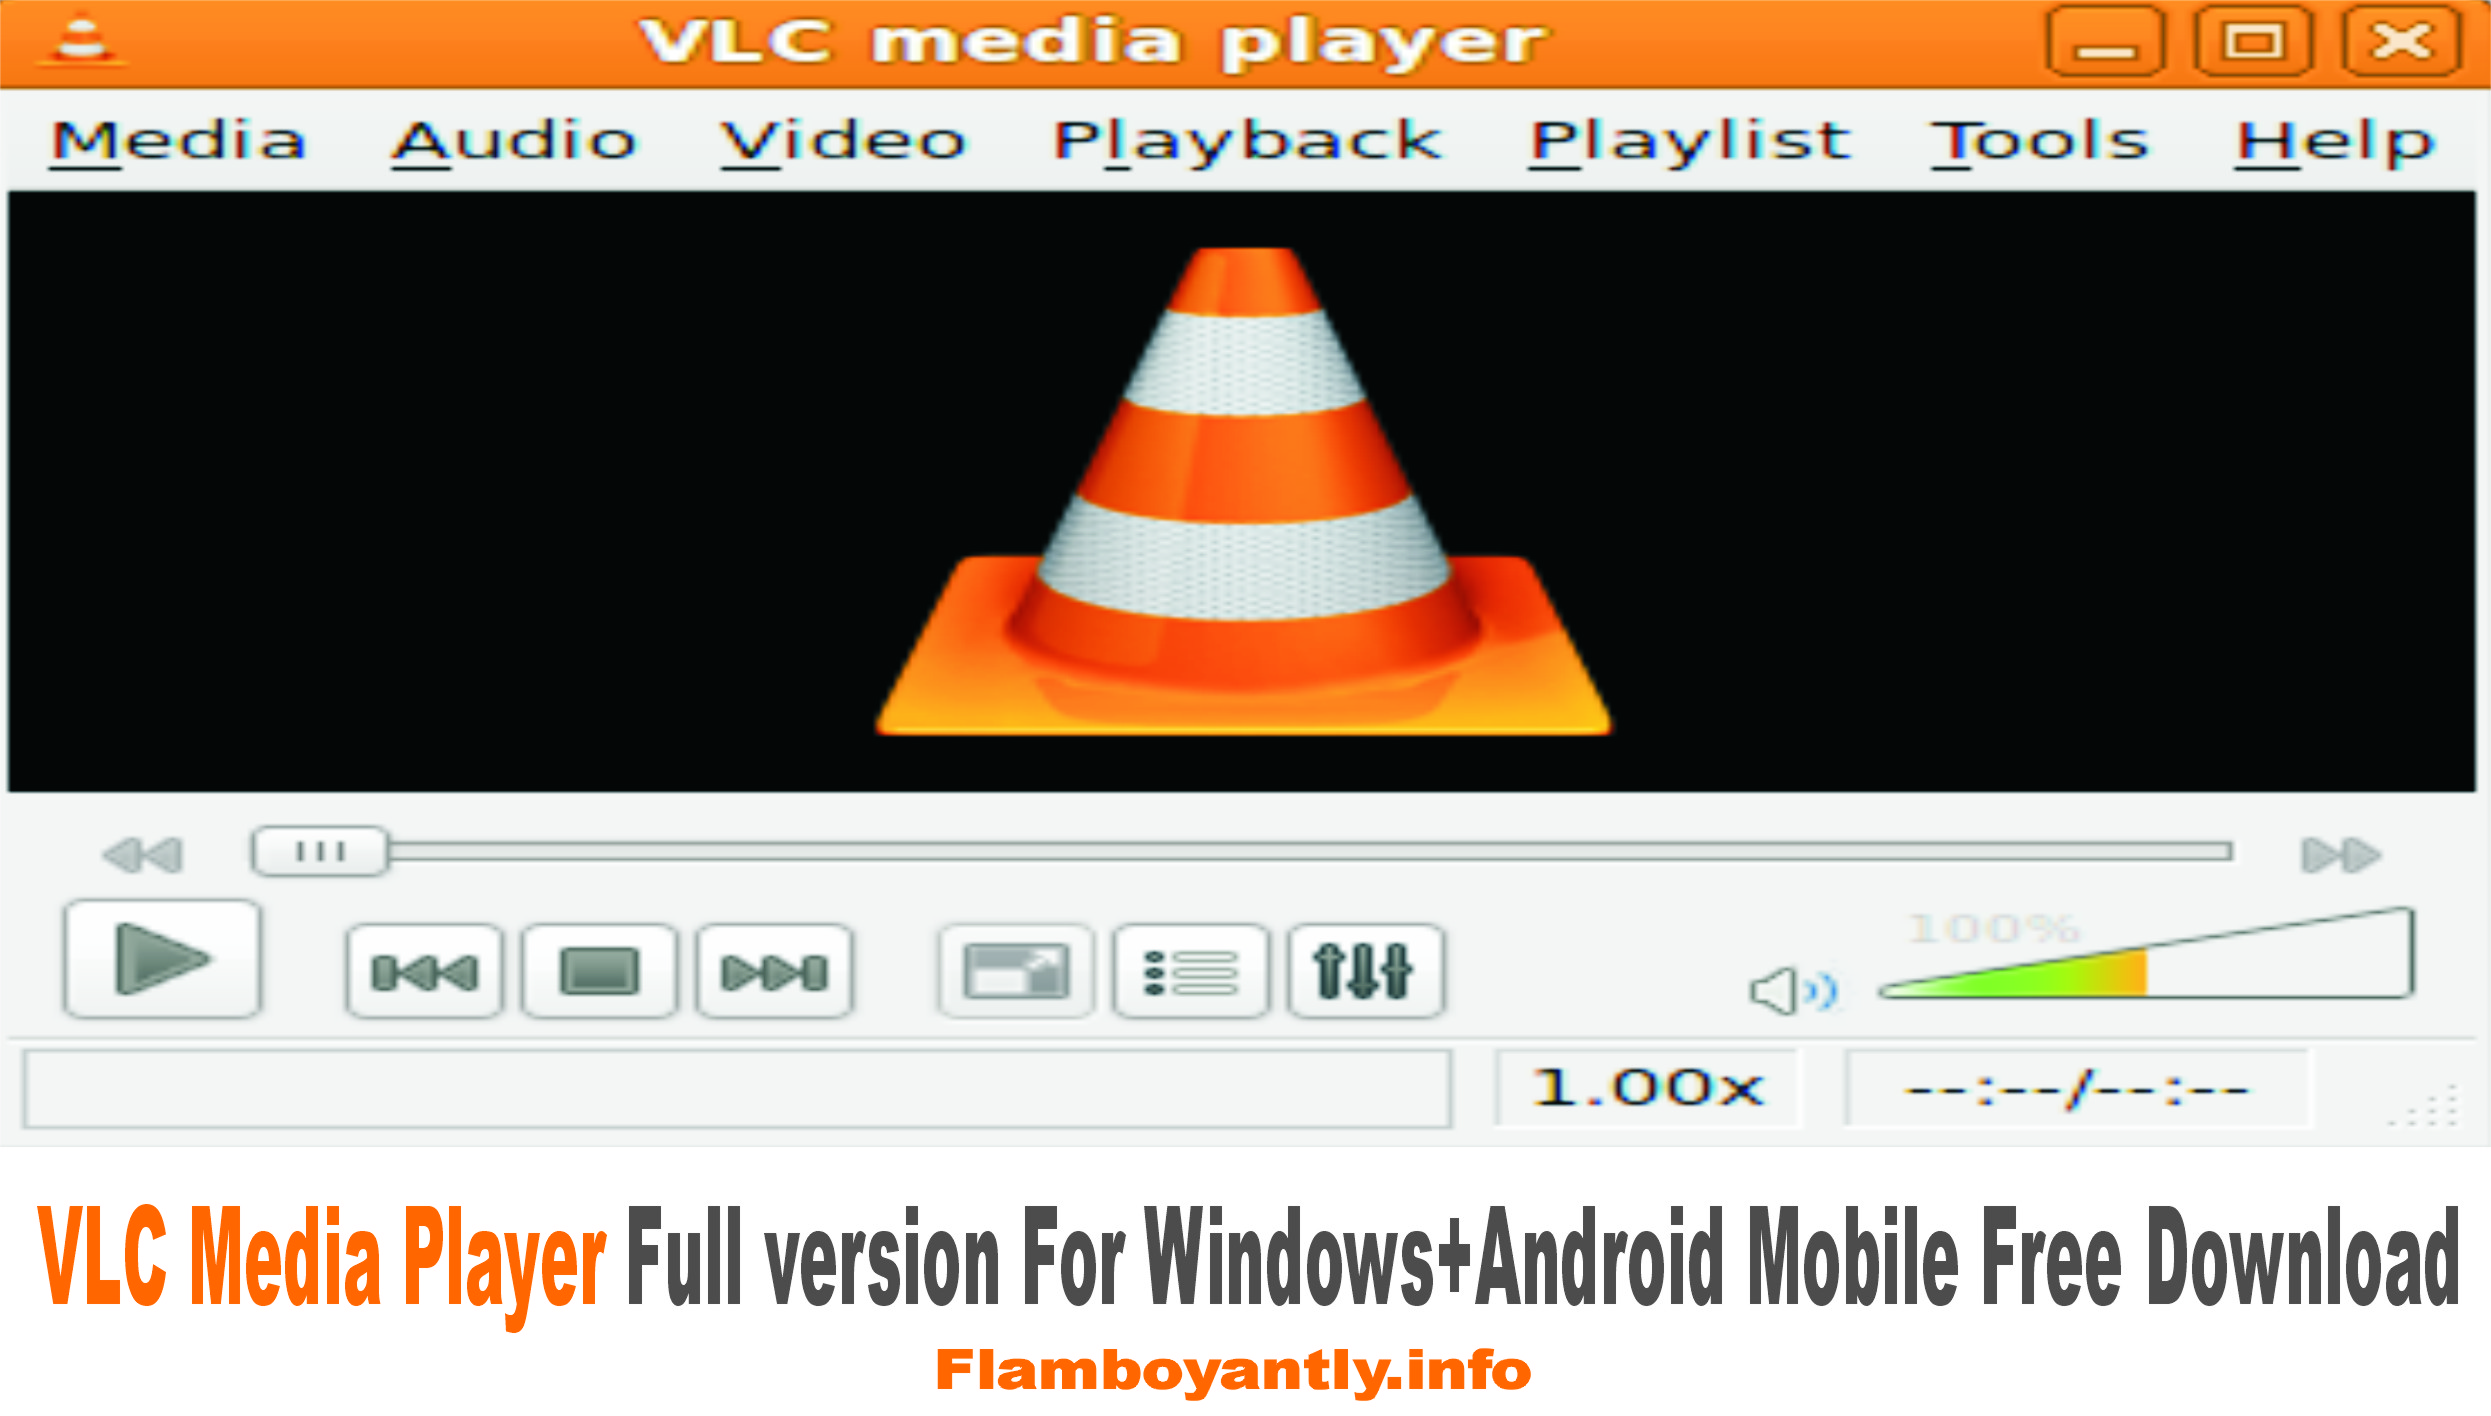 vlc media player for windows 8 mobile free download